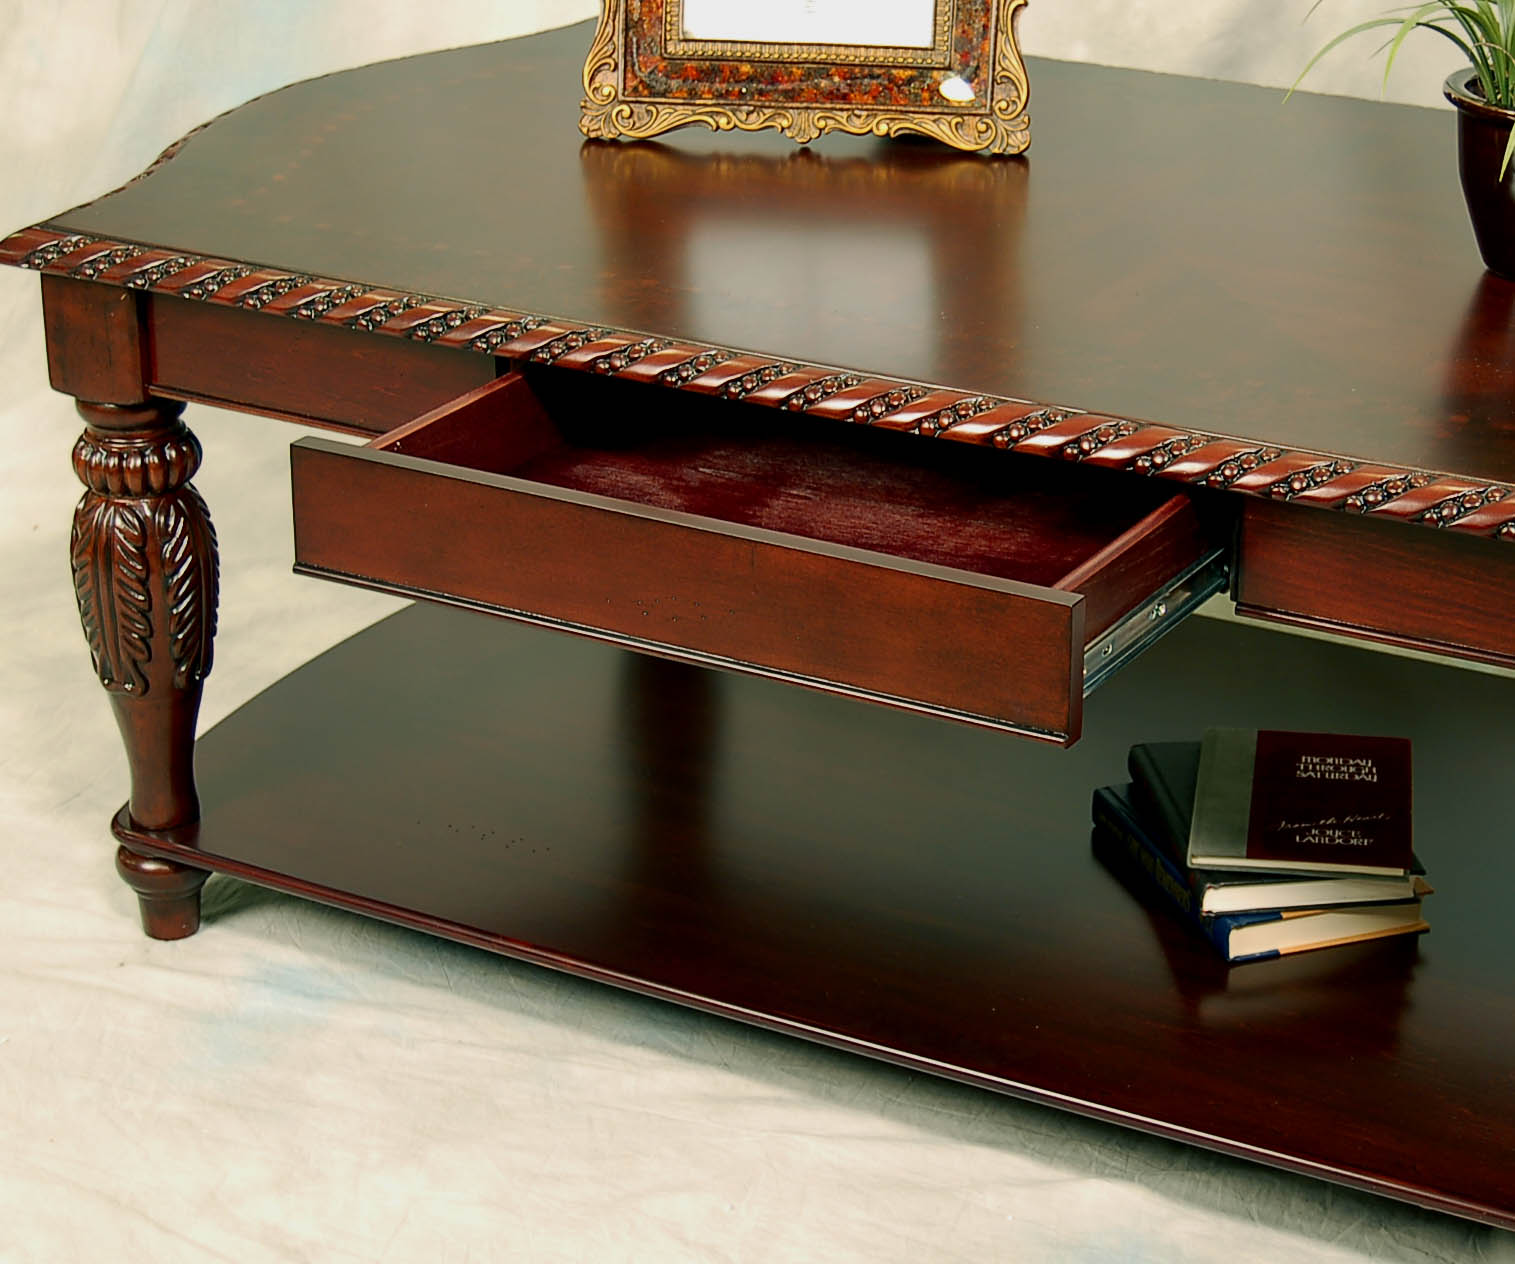 Mahogany Coffee Table: Brown Carved Mahogany Coffee Table And 2 End Table Set